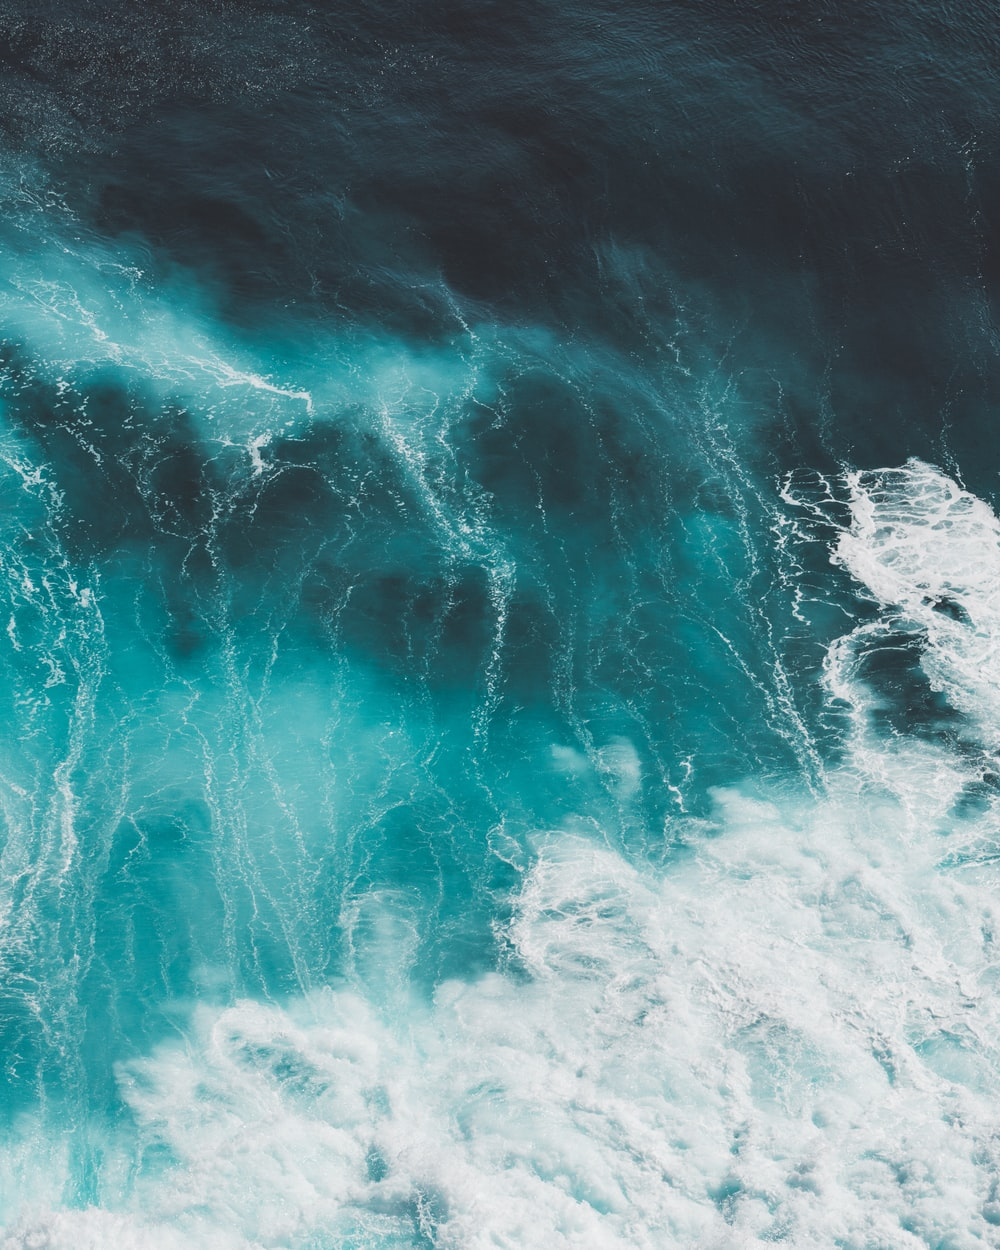 blue and white ocean waves